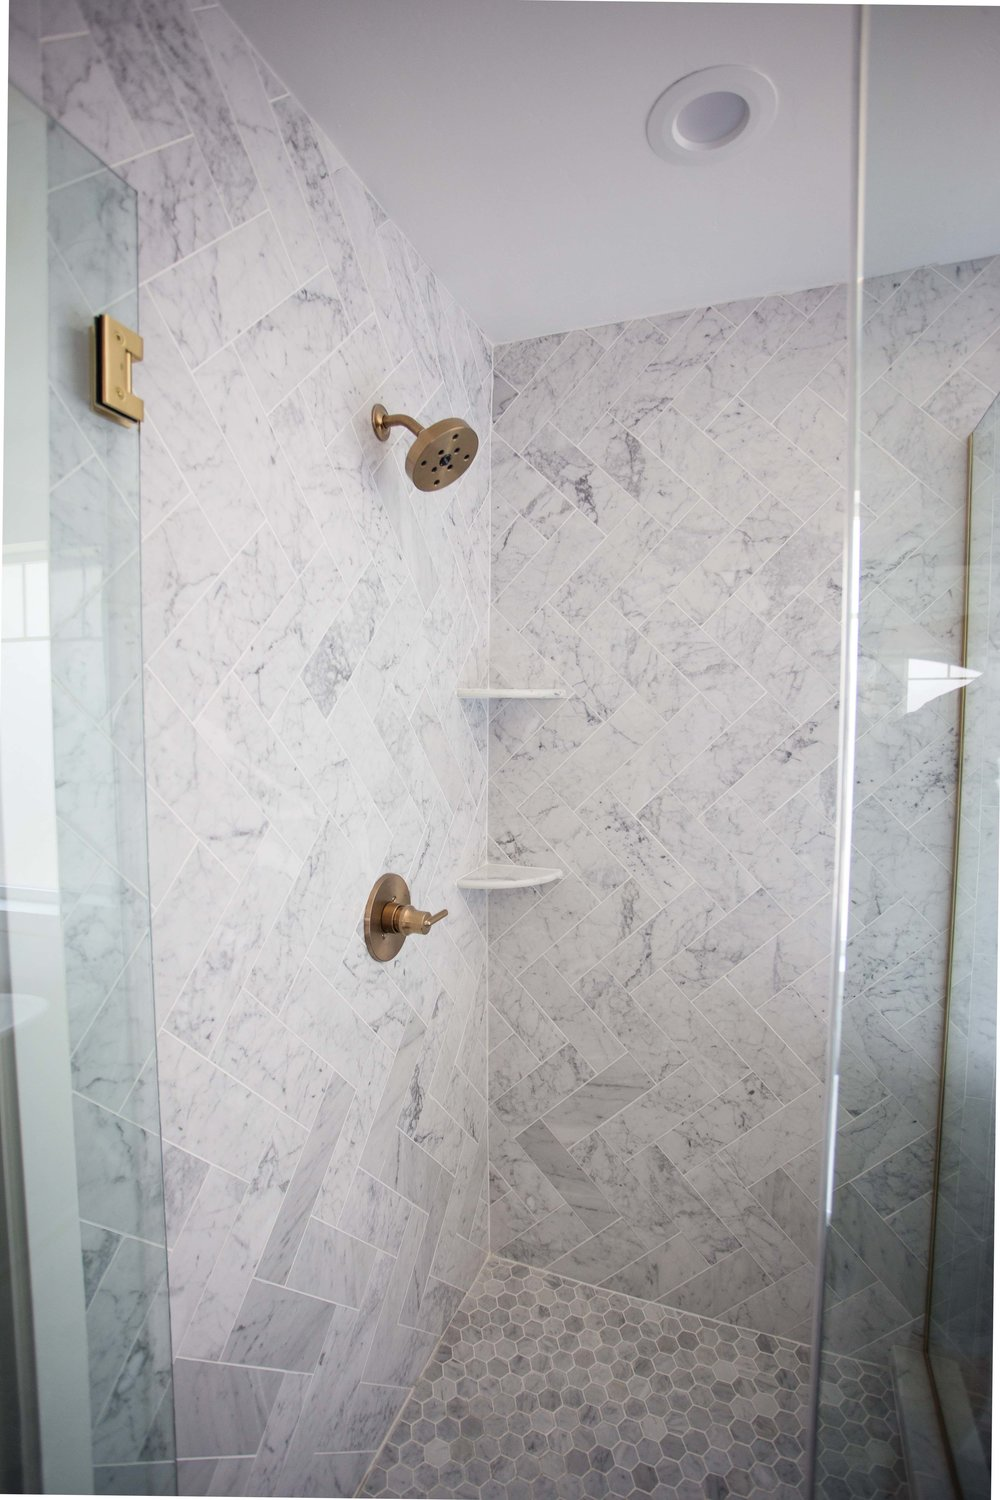 Herringbone marble and brass fixtures and shower door hardware